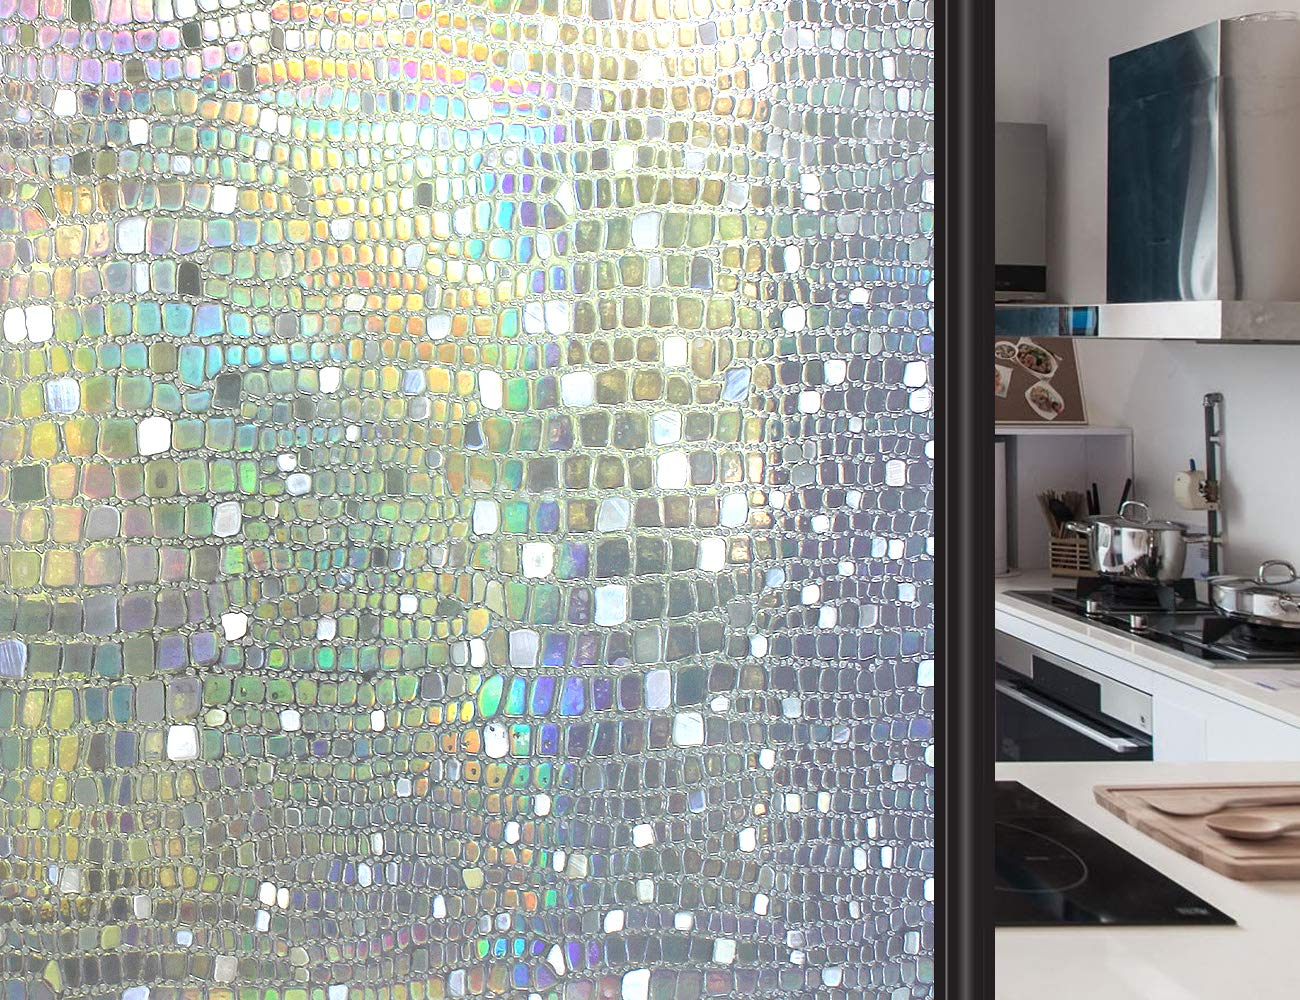 Artscape Decorative Window Film.Artscape Window Film Privacy Uv Blocking Heat Control Reusable Static Cling Stained Glass Decorative Covering Stickers For Home 3d 01 35 4 Inch X 8 2